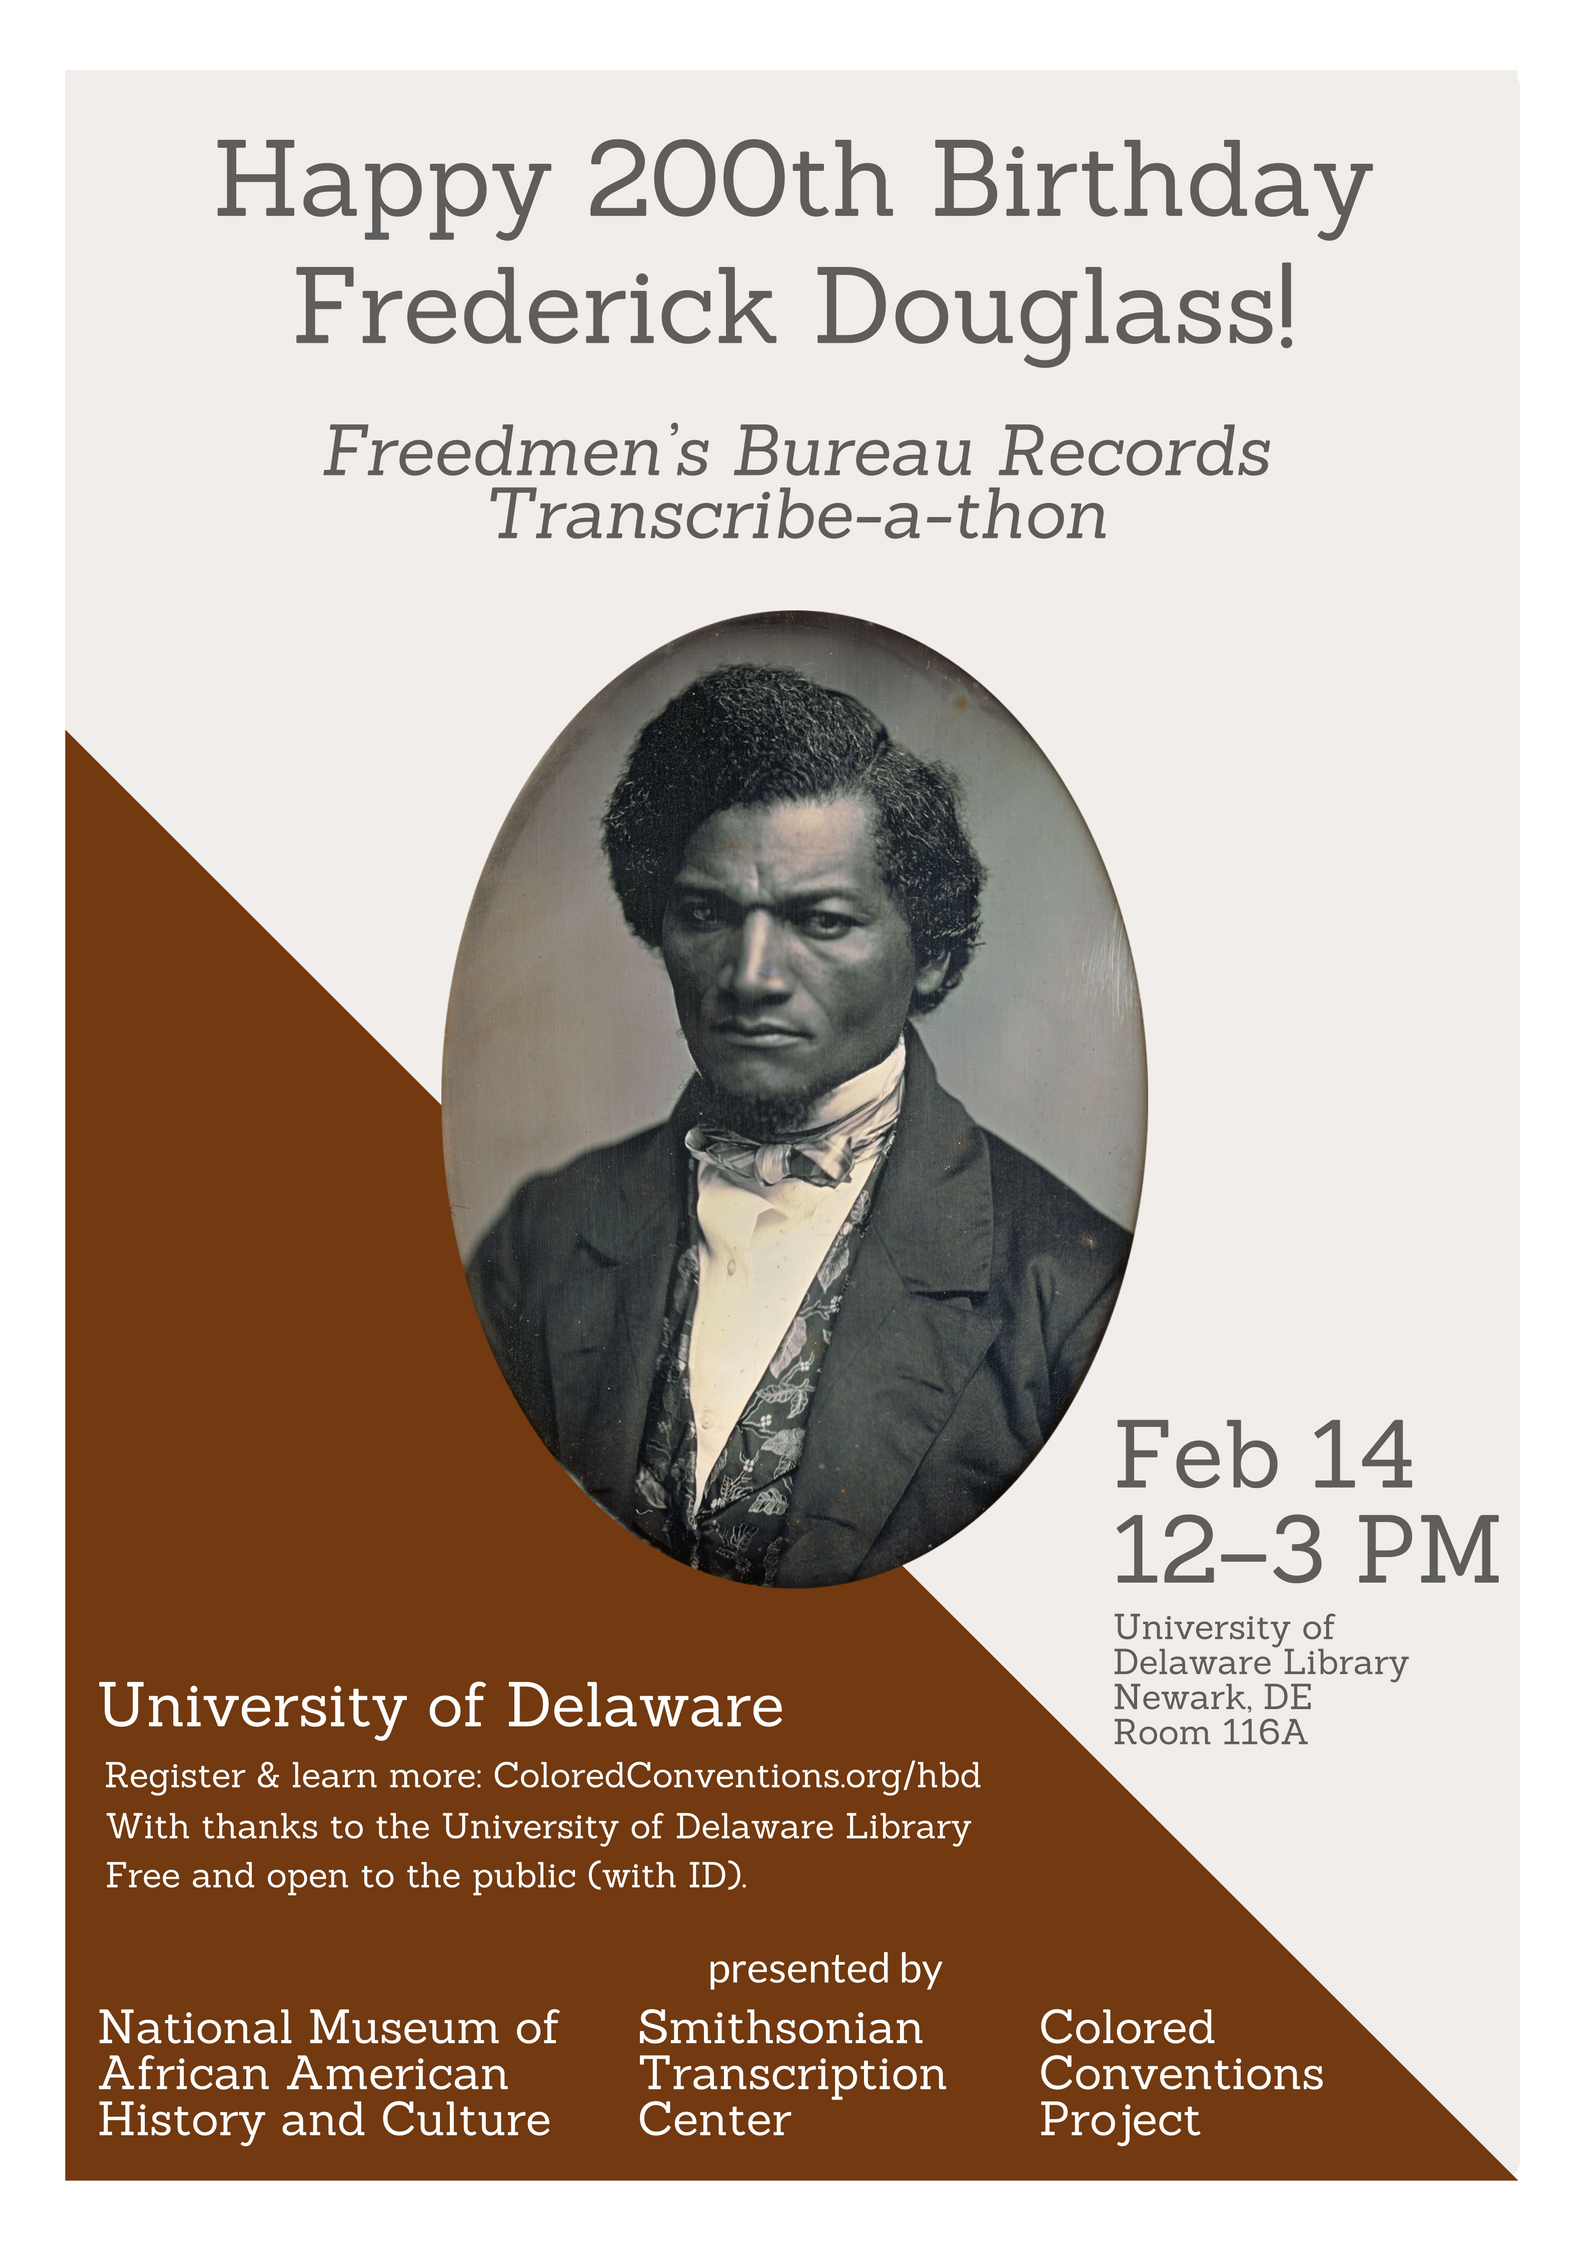 UD Hosting 200th Anniversary Douglass Day Transcribe-a-Thon